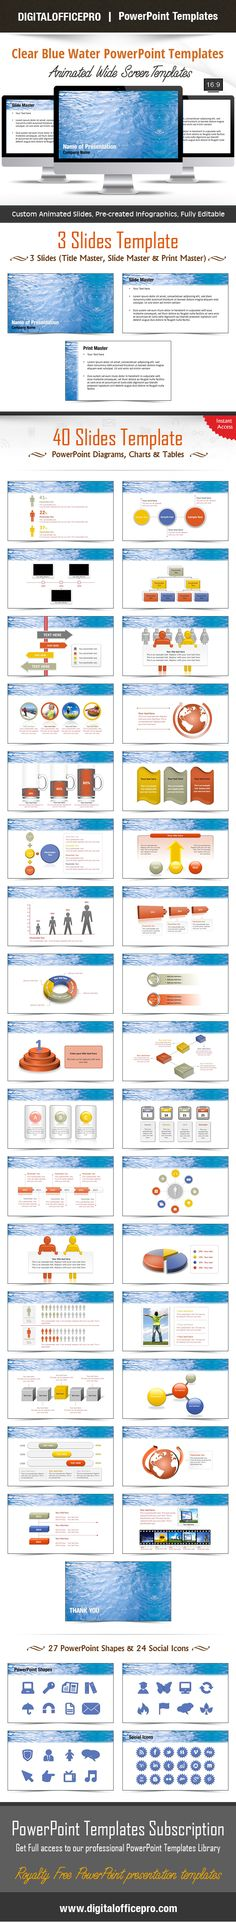 Leaf PowerPoint Template Backgrounds Shape, Set of and Leaves - water powerpoint template